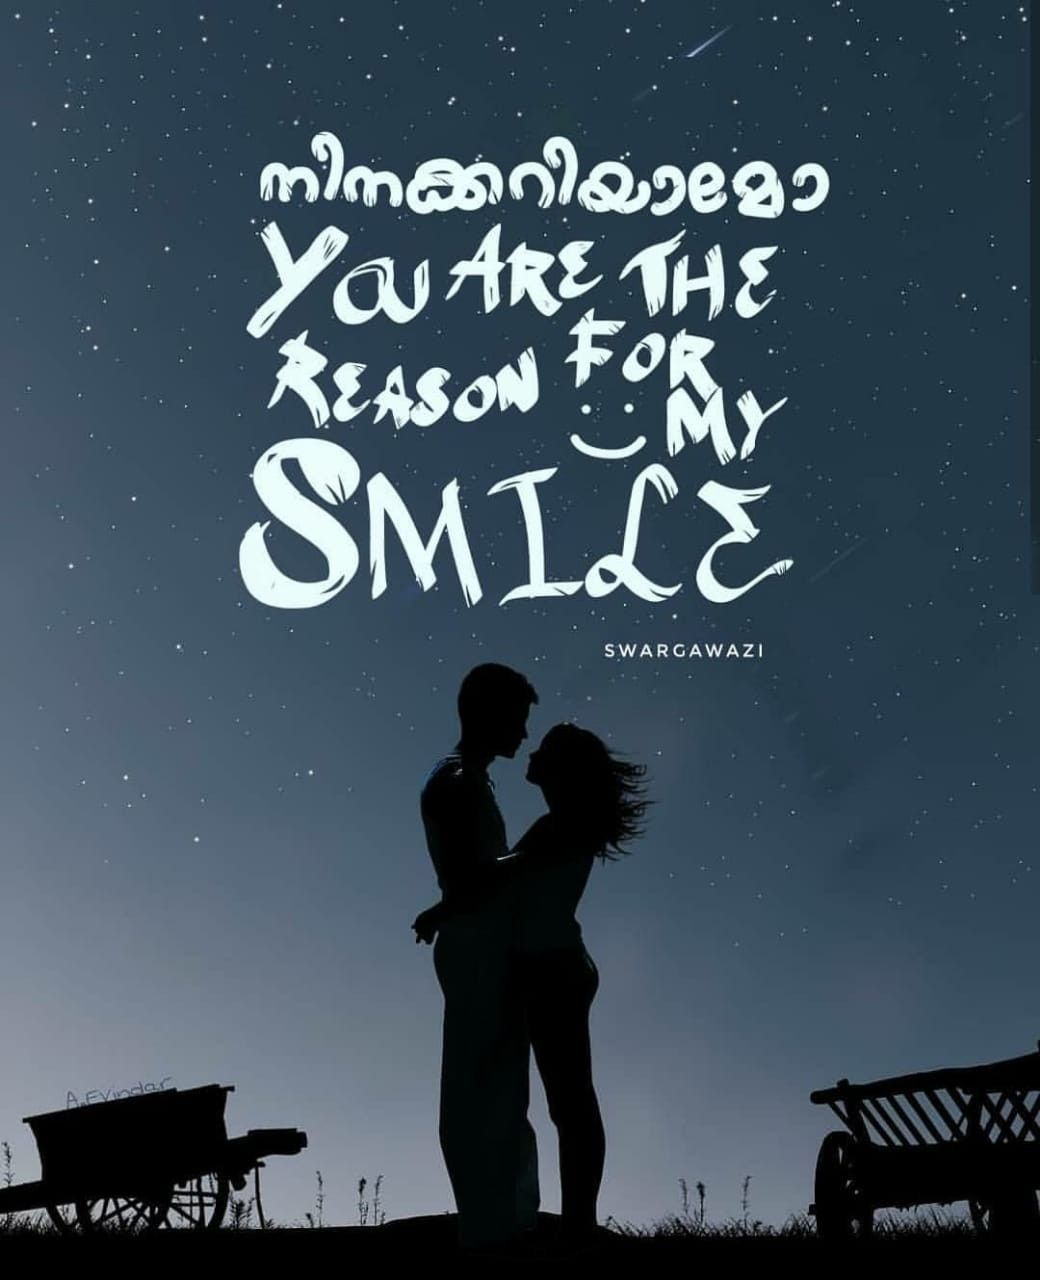 Malayalam Love Pudse Get Lost: Sathyam Chettante Meenootty T Quotes Love Quotes And